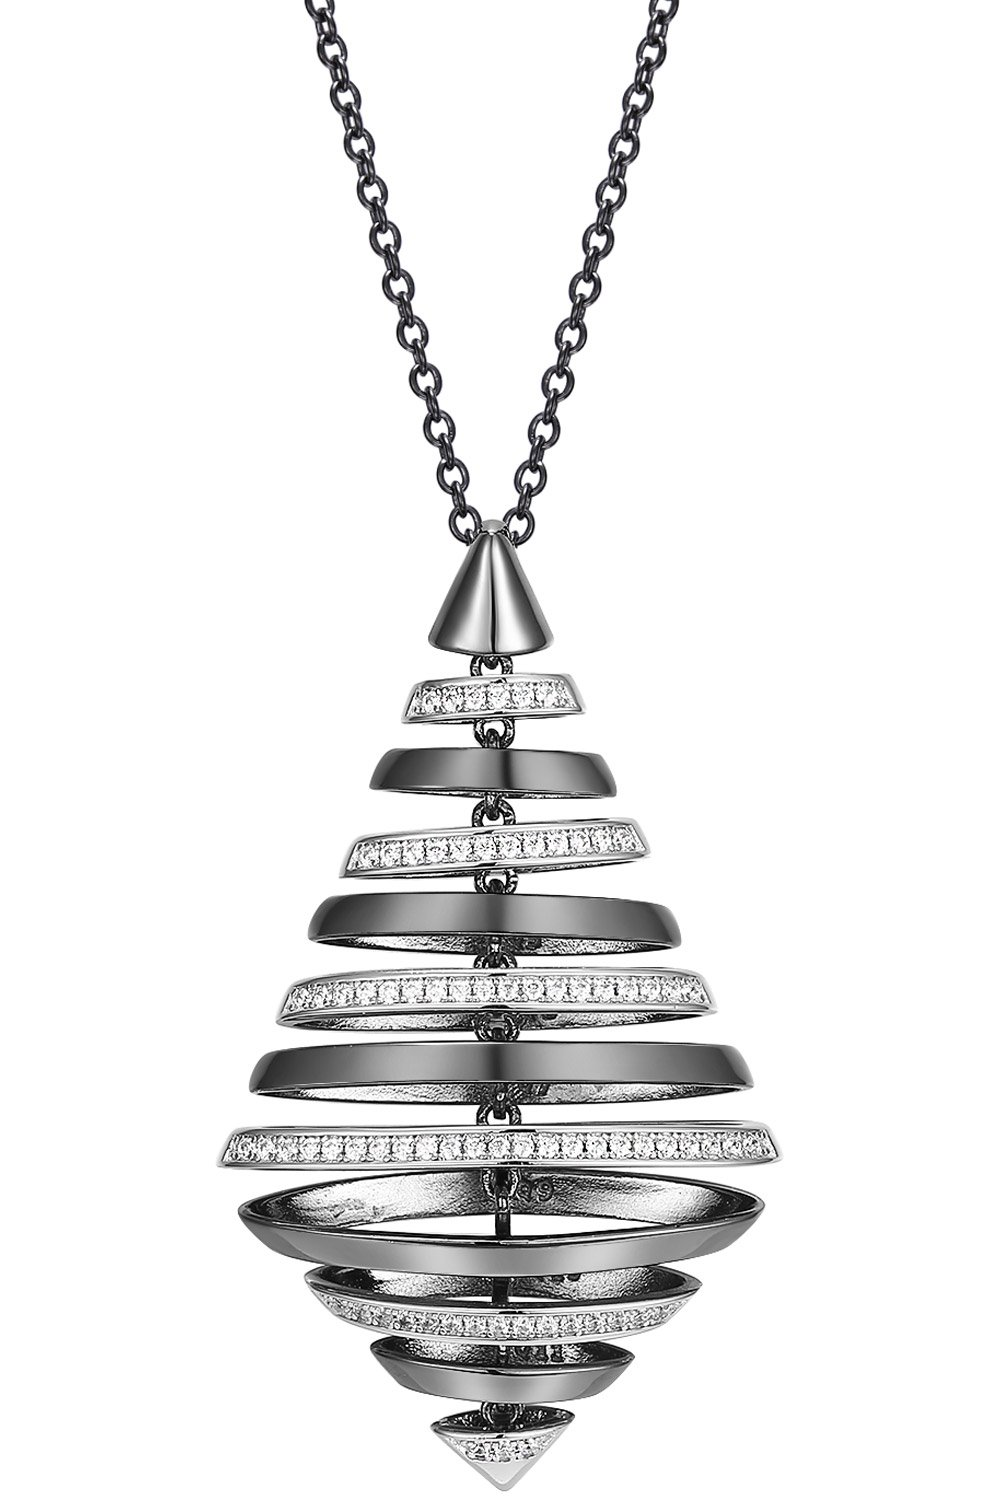 bei Uhrcenter: IUN Silver Couture PS01119A1-WWB Collier New Wave Silber 925 Bicolor - Schmuck